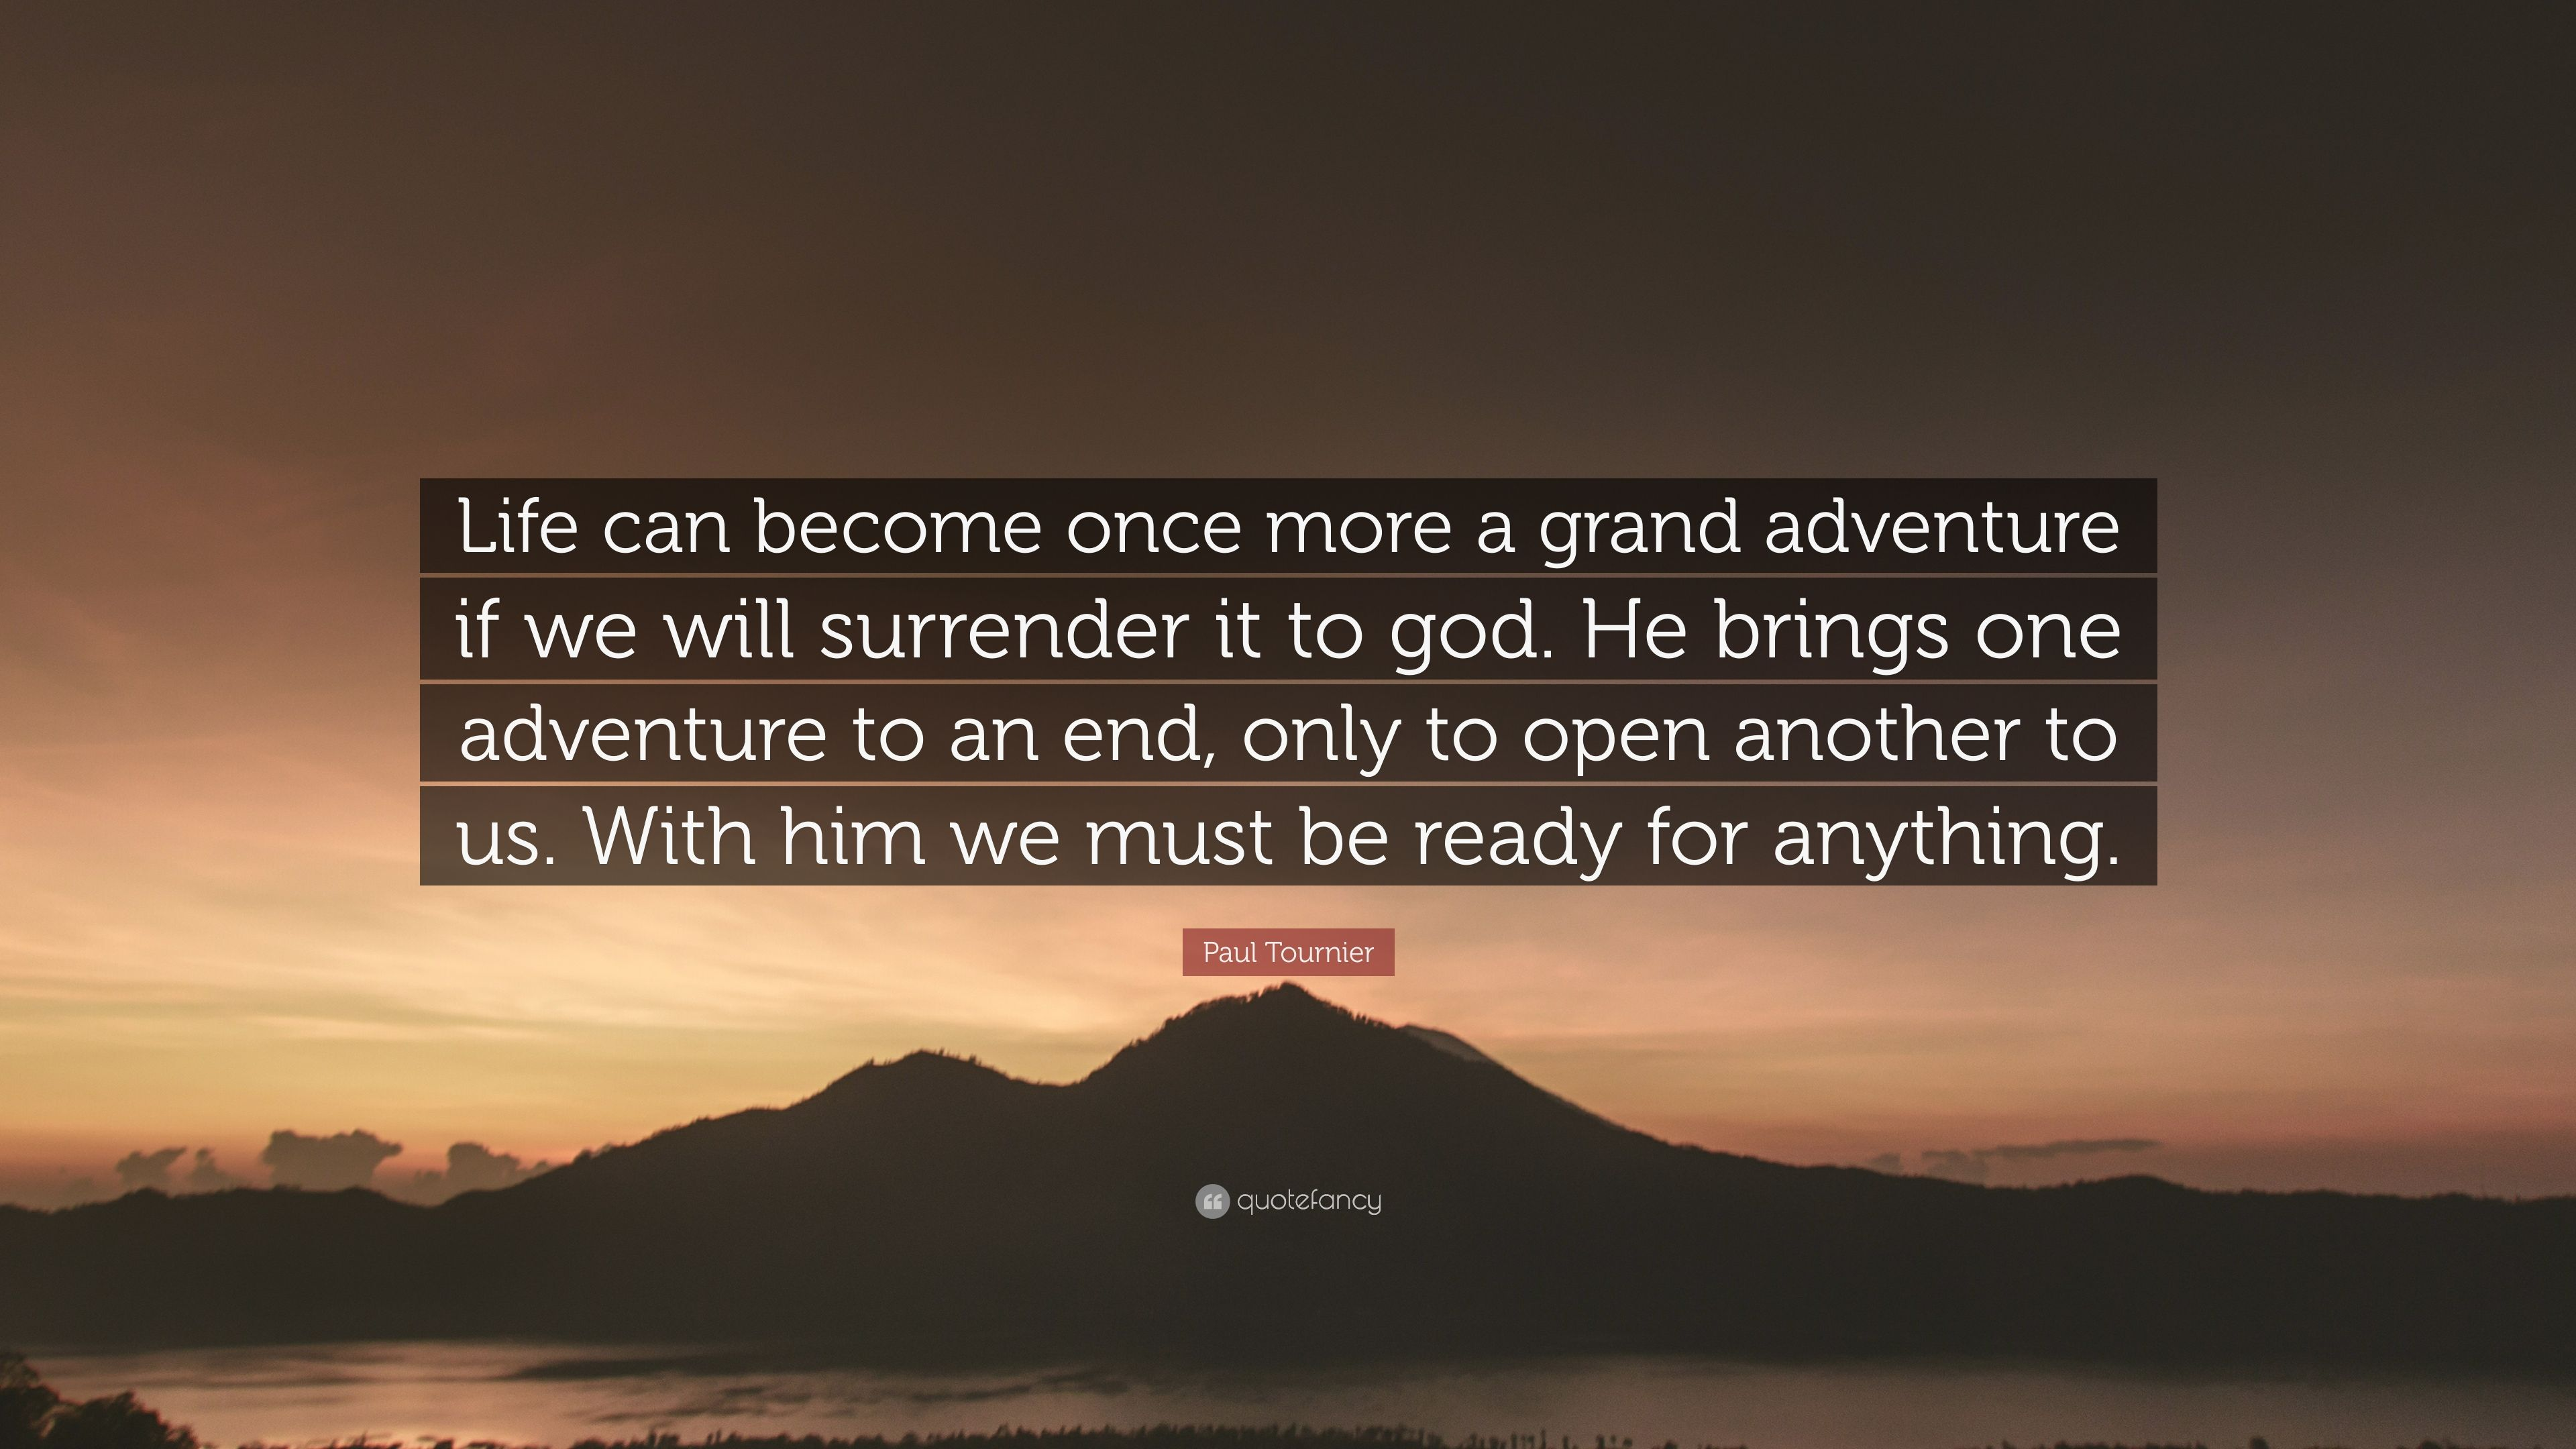 Paul Tournier Quote: U201cLife Can Become Once More A Grand Adventure If We Will